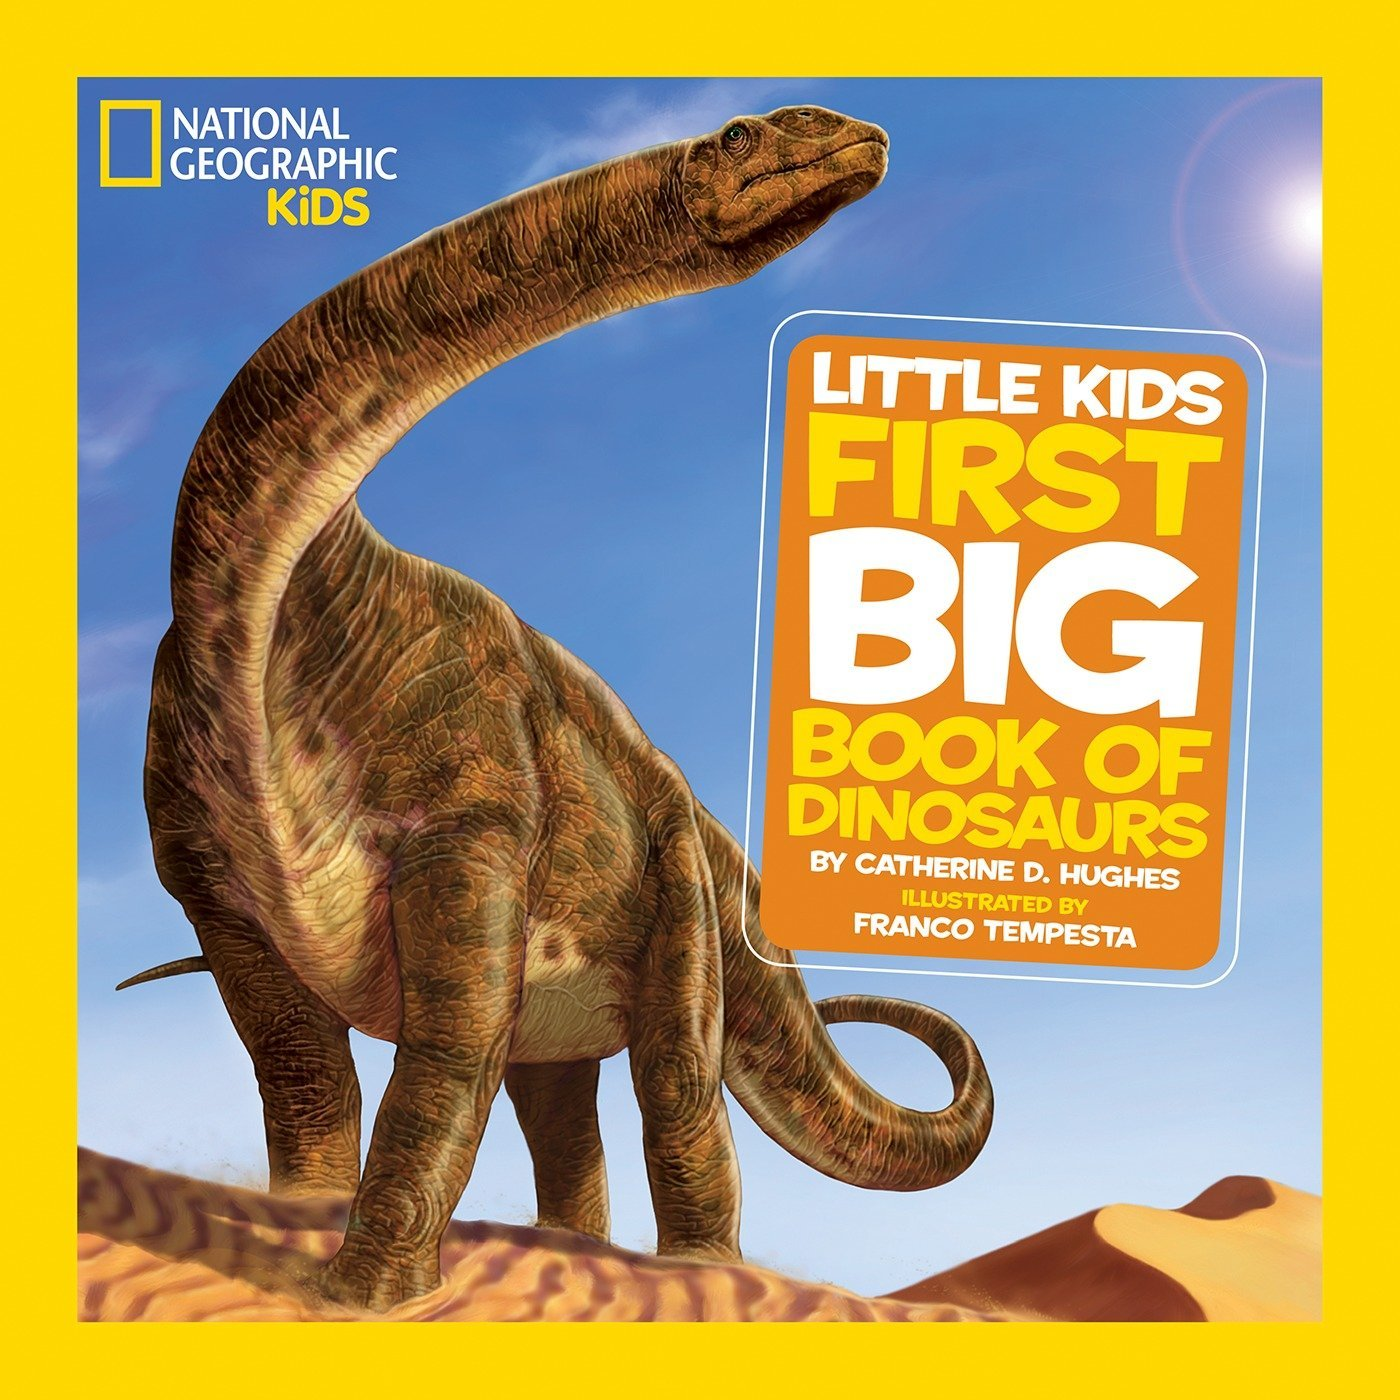 National Geographic Little Kids First Big Book of Dinosaurs (National Geographic Little Kids First Big Books) by NATIONAL GEOGRAPHIC